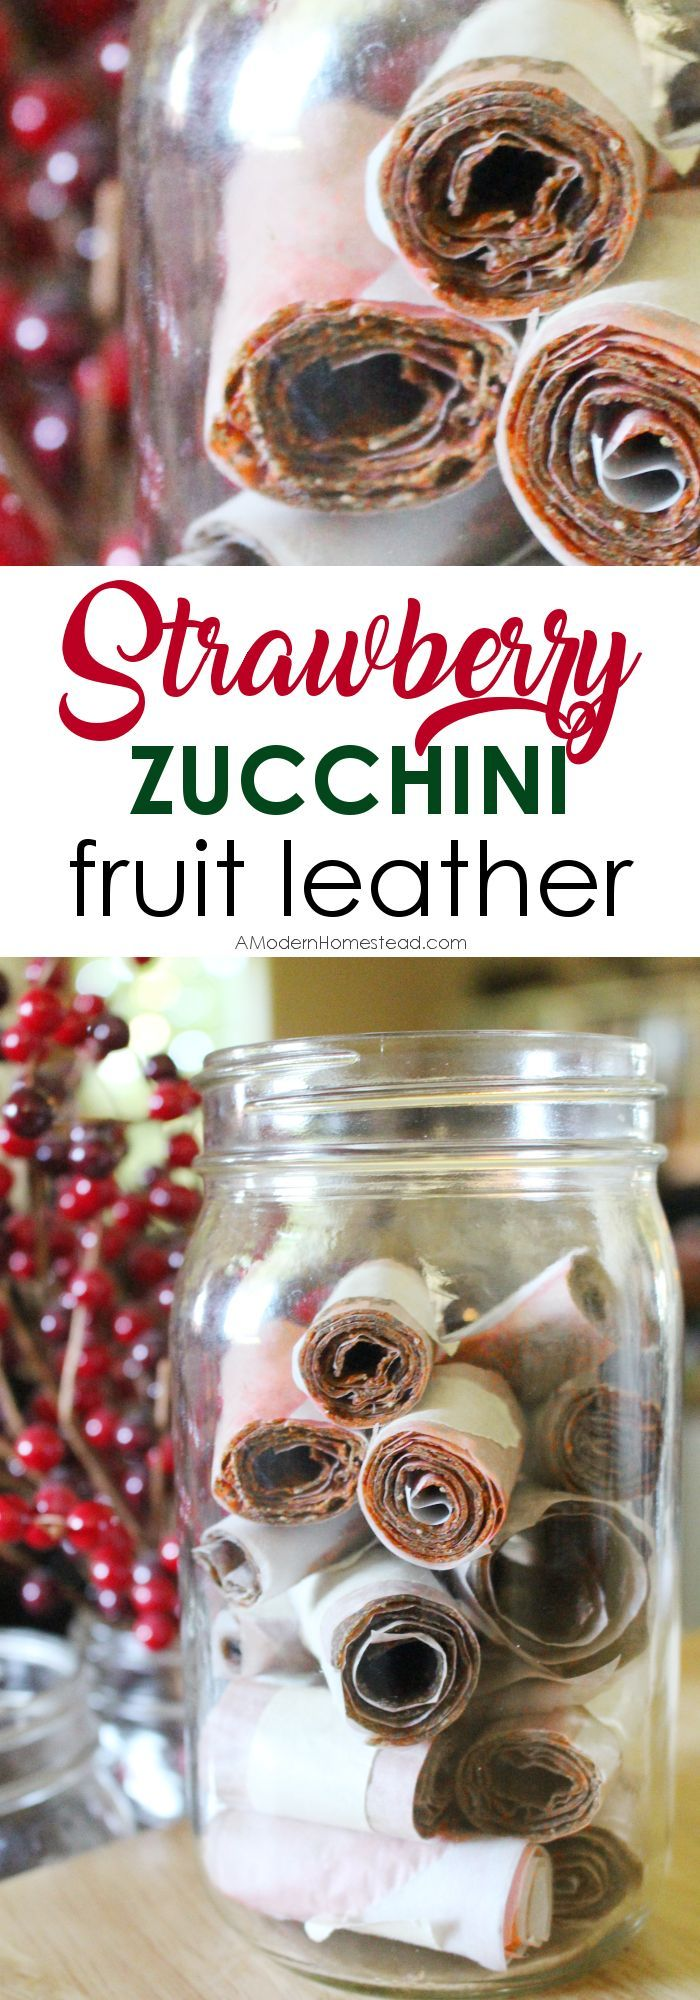 Homemade fruit leather is an easy way to give your family a healthy snack, and even sneak in some veggies too! Find out how to make this delicious fruit leather with a bunch of zucchini and just a few strawberries!